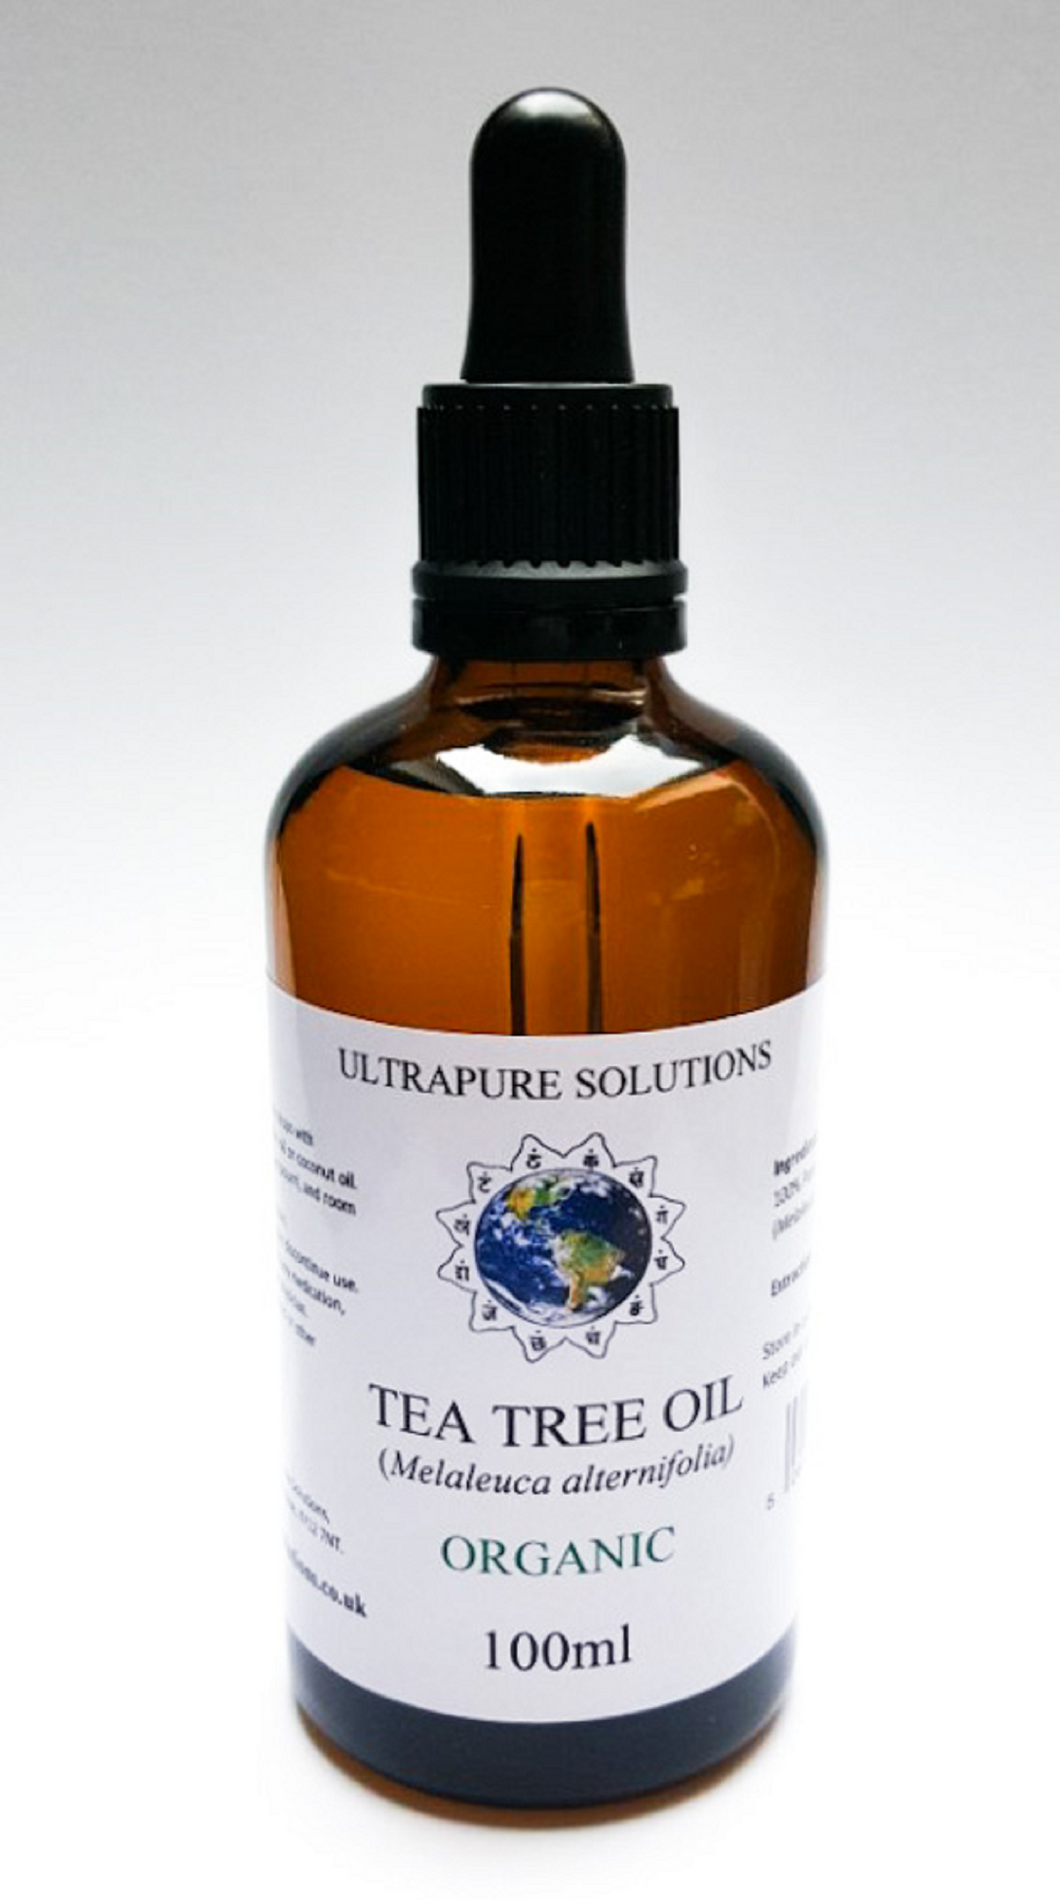 100ml Tea Tree Oil 100% Pure ORGANIC Natural Essential Oil Aromatherapy - Ultrapure